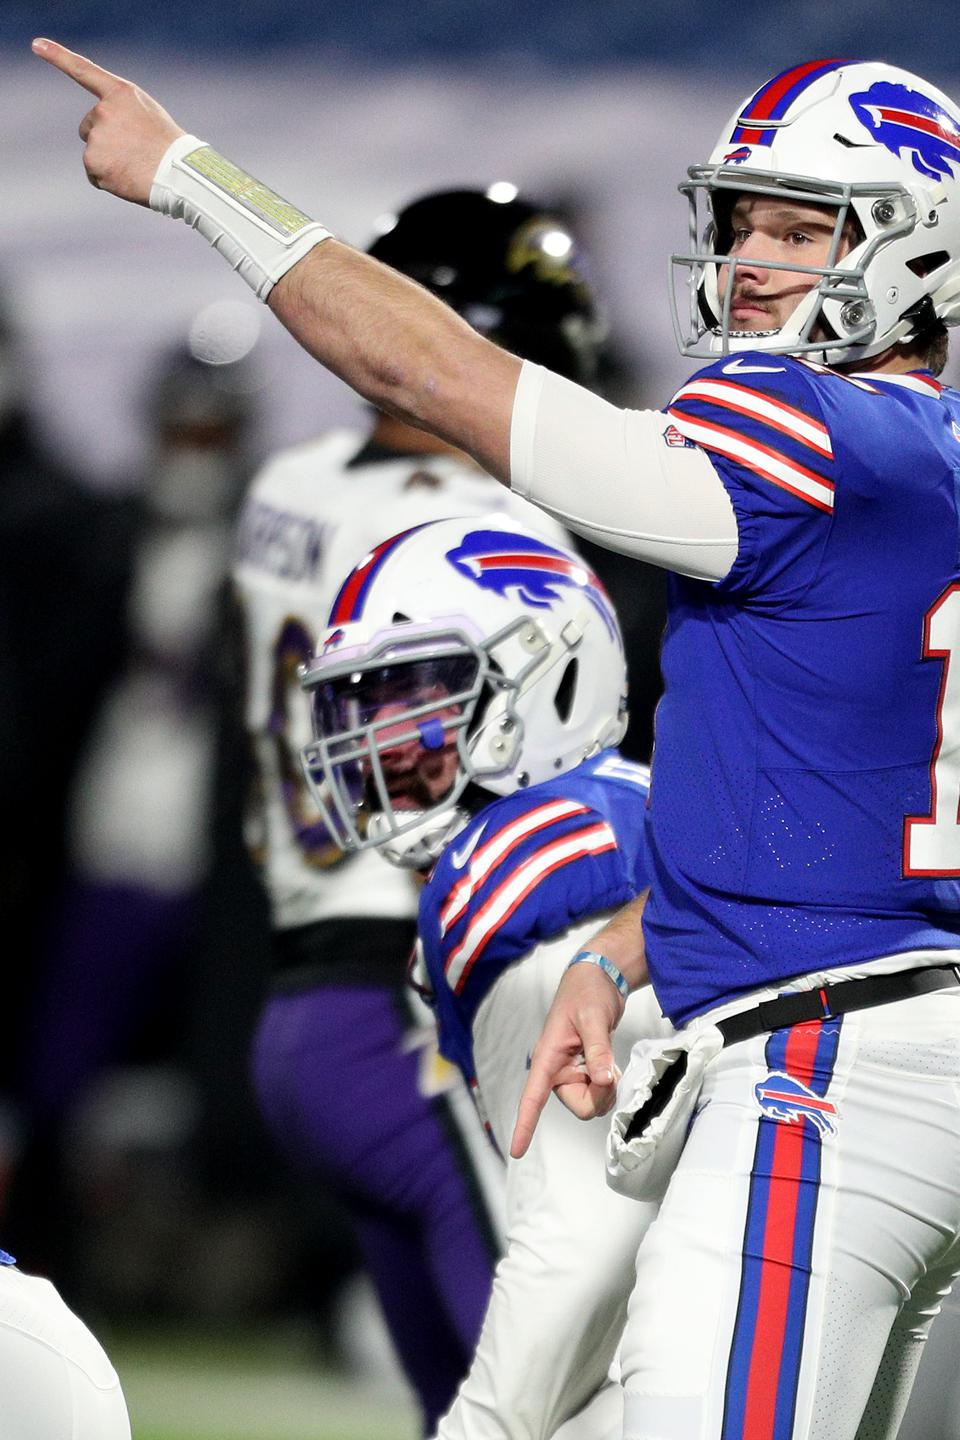 Josh Allen of the Buffalo Bills signals during the game against the Baltimore Ravens.